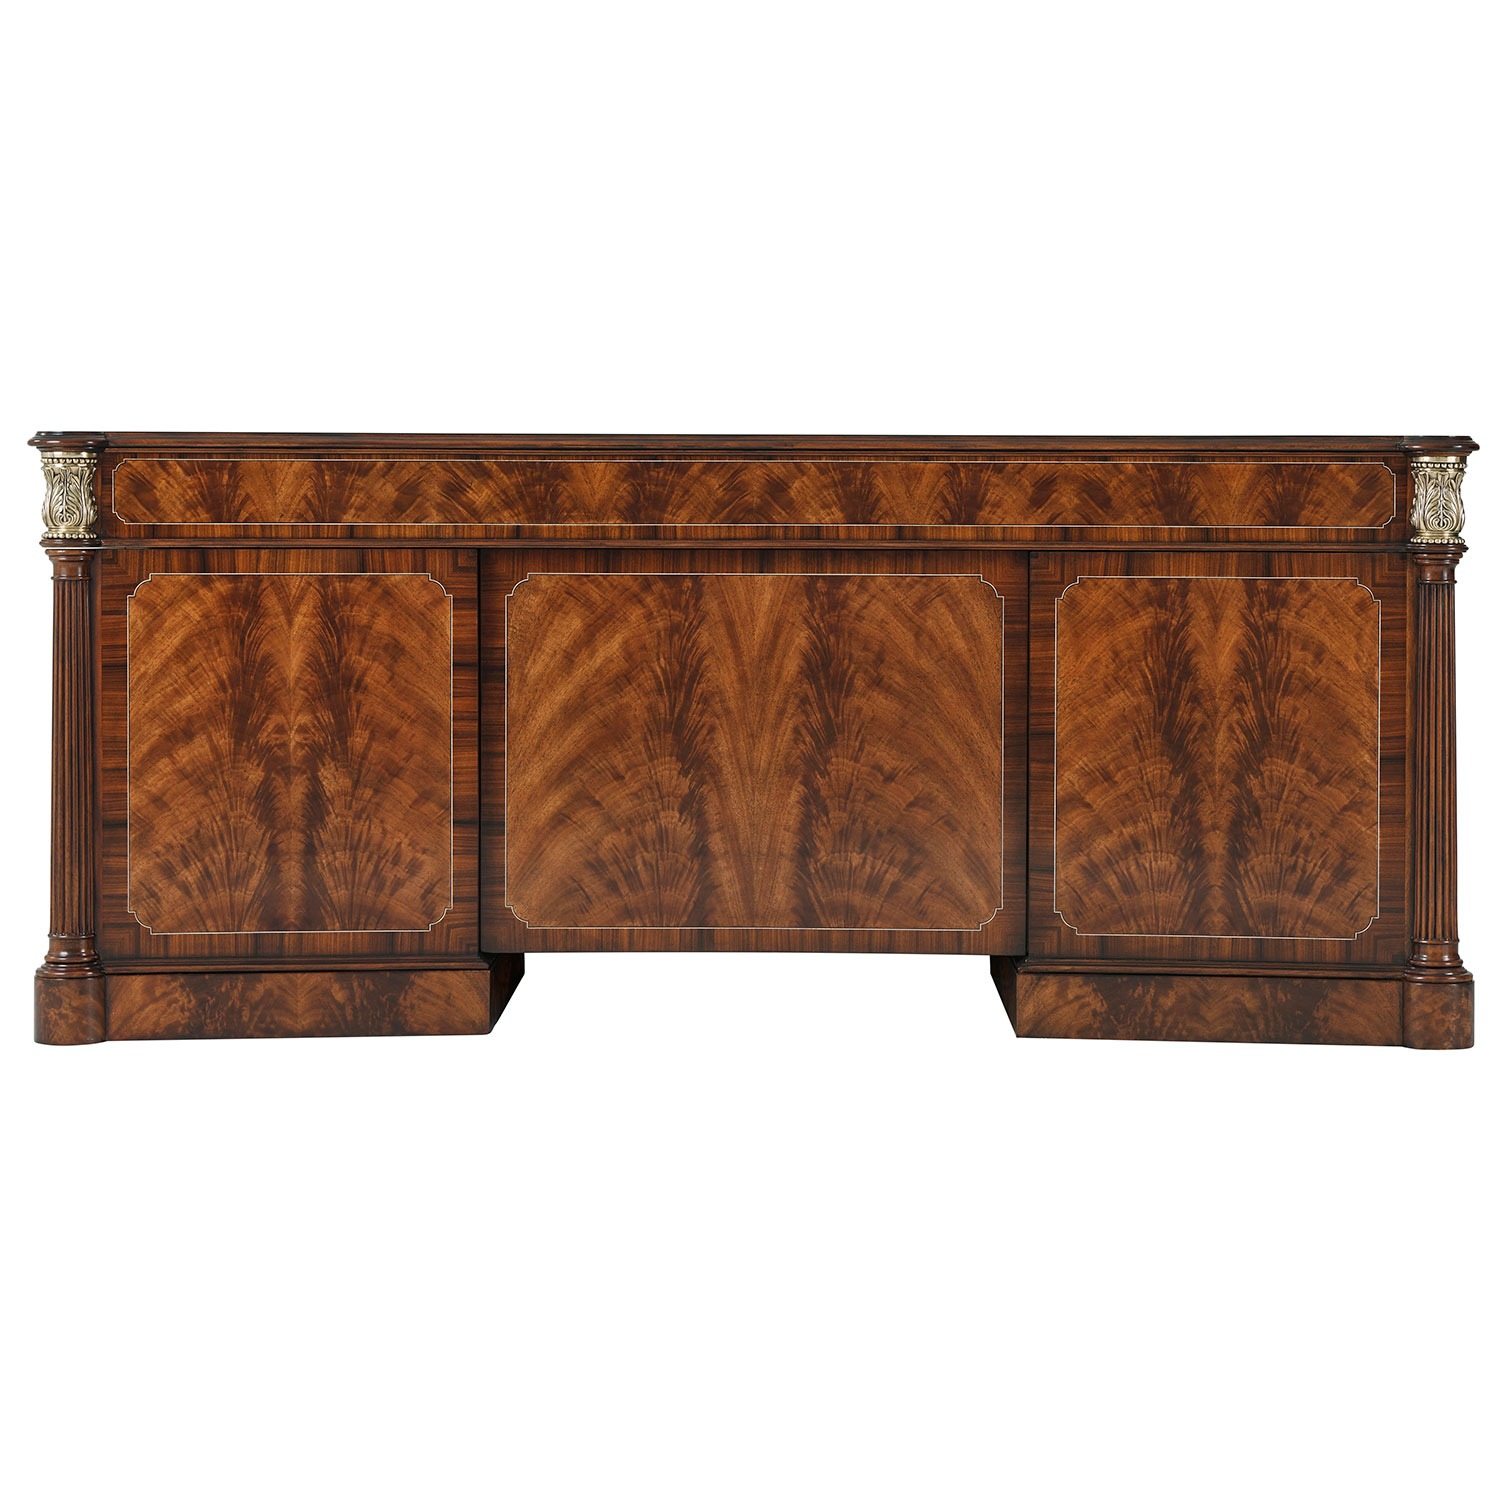 Flame mahogany and crossbanded pedestal desk